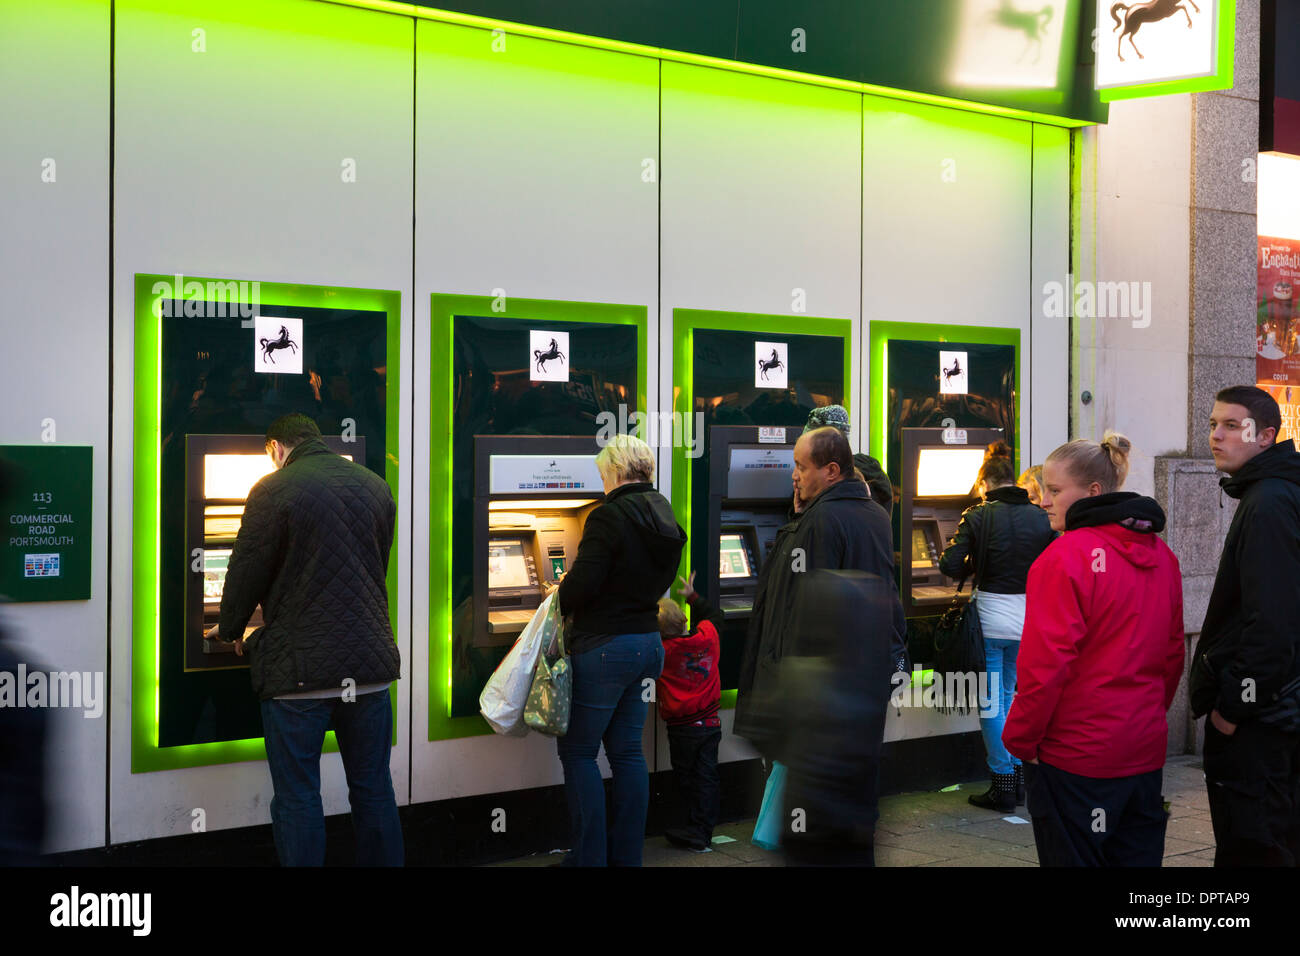 Customers using Lloyds Bank ATM machines after dark. - Stock Image